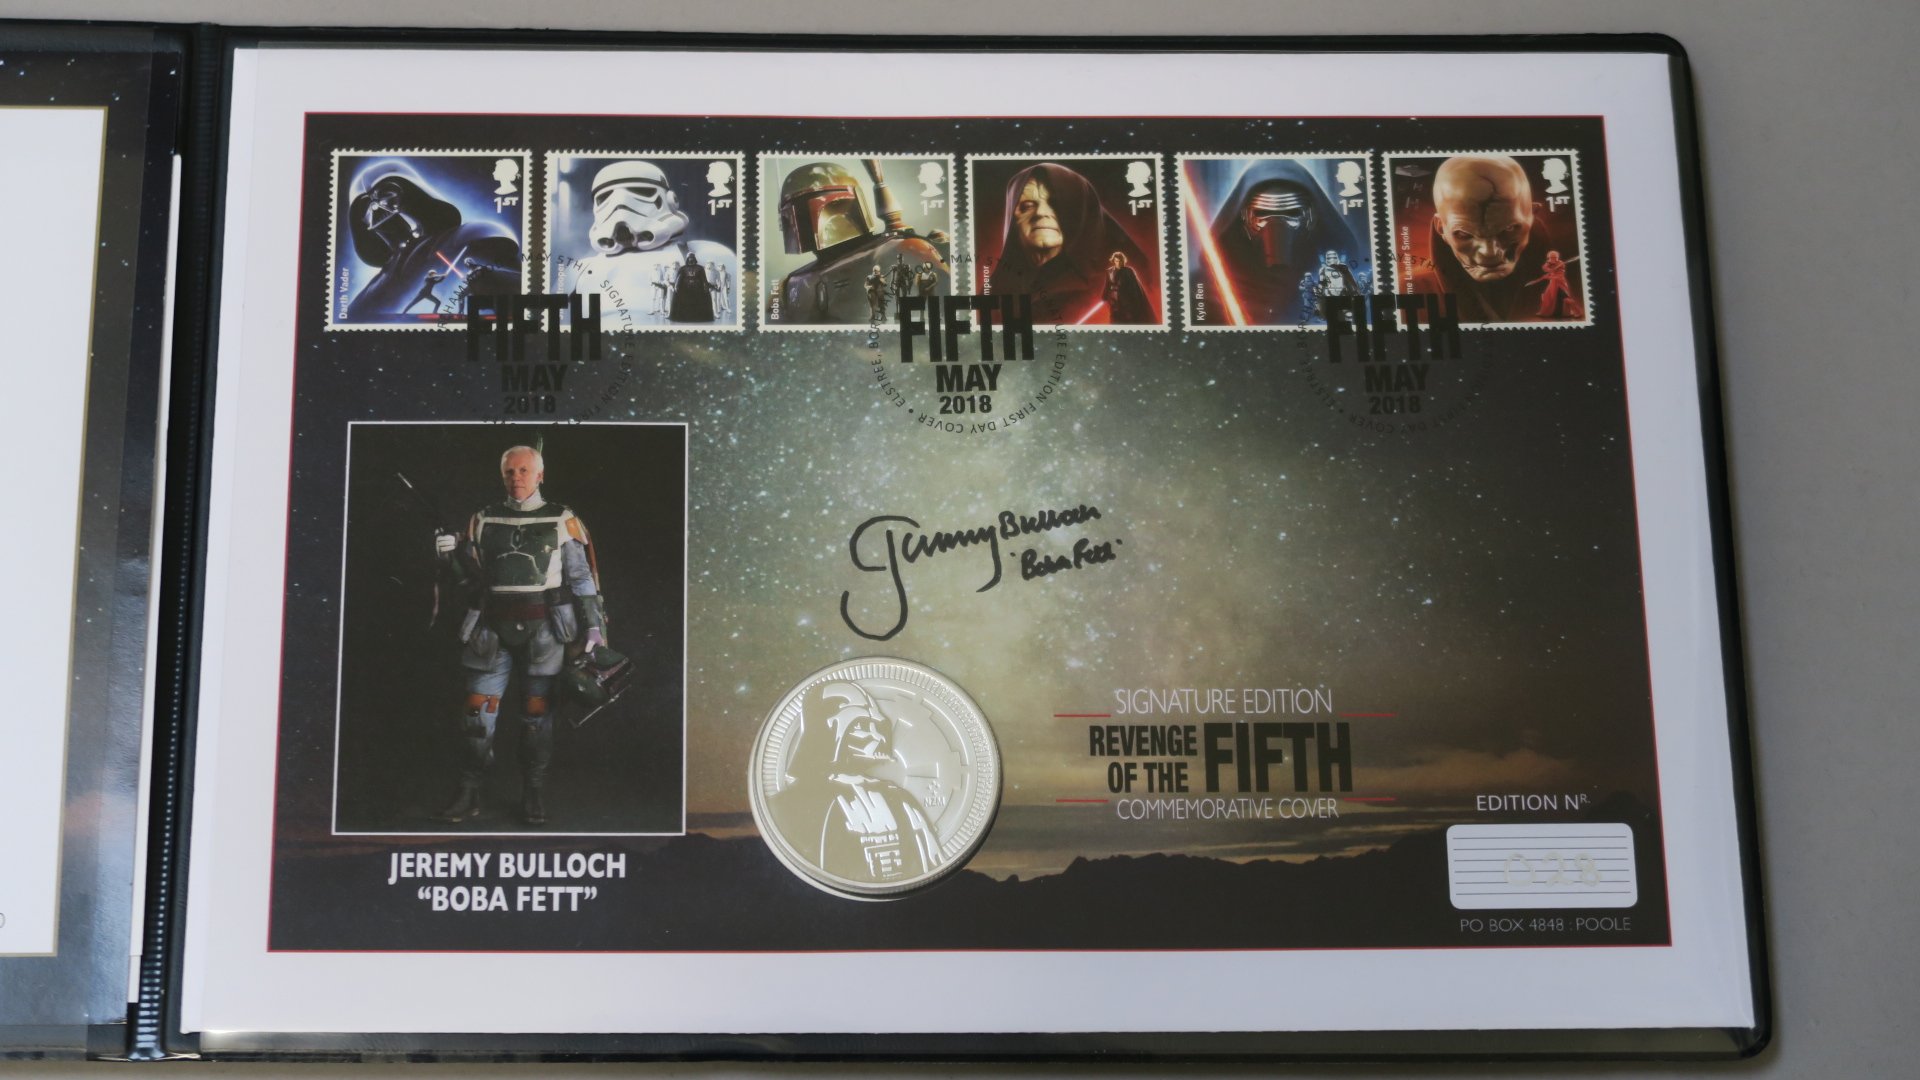 Lot 2 - Star Wars limited edition 1oz silver bullion Darth Vader coin from Westminster with Jeremy Bulloch